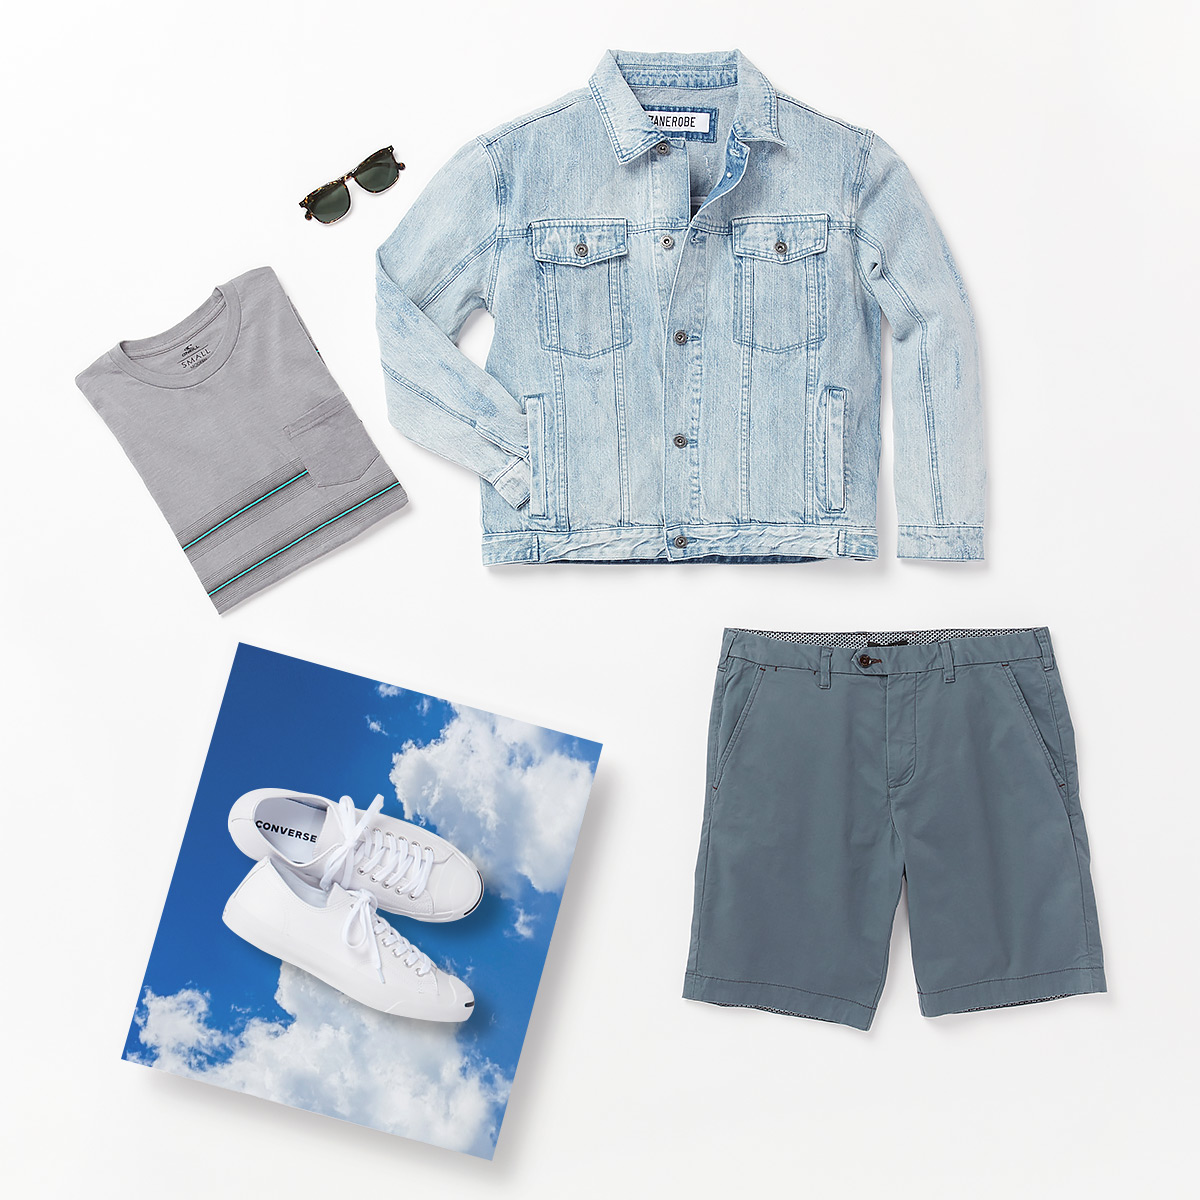 Grey t-shirt, light wash denim jacket, blue shorts, sunglasses and white Converse sneakers laid flat on a white background.